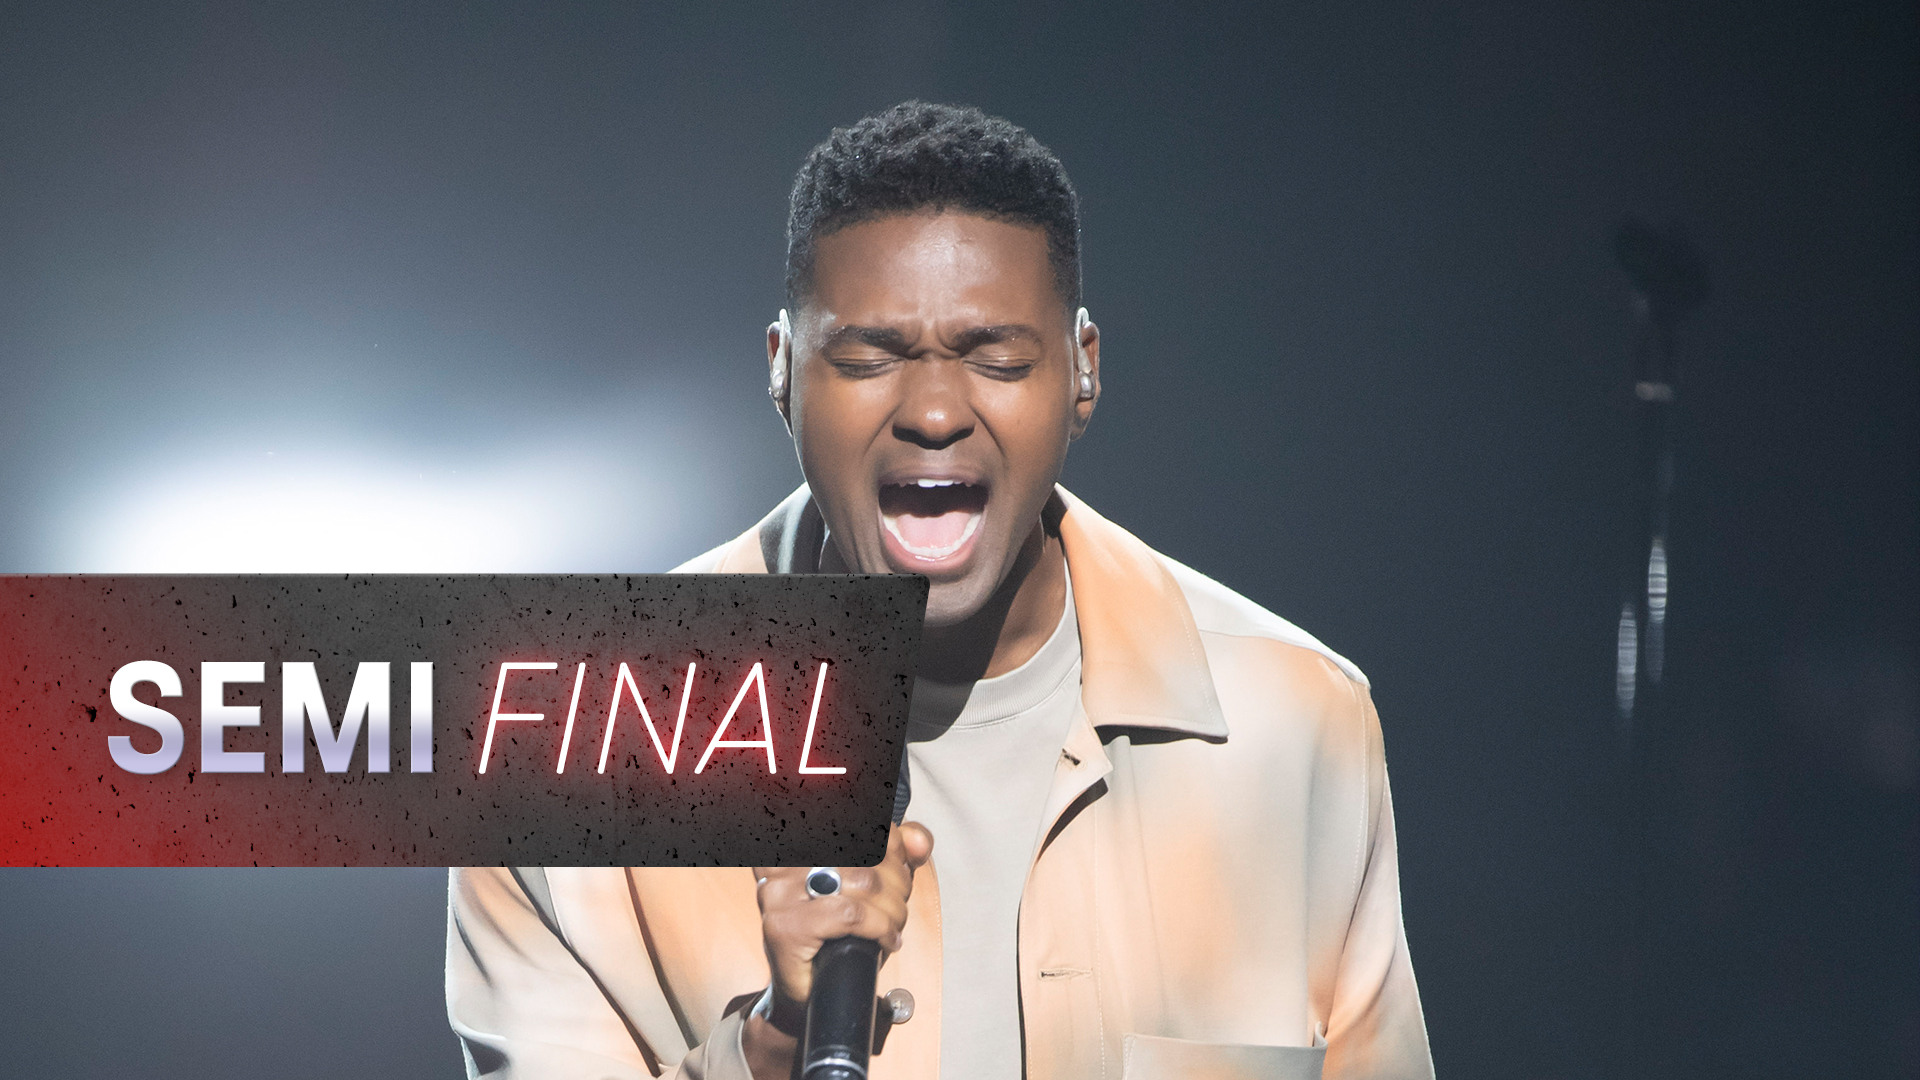 Semi Final: Johnny Manuel 'A Change is Gonna Come'